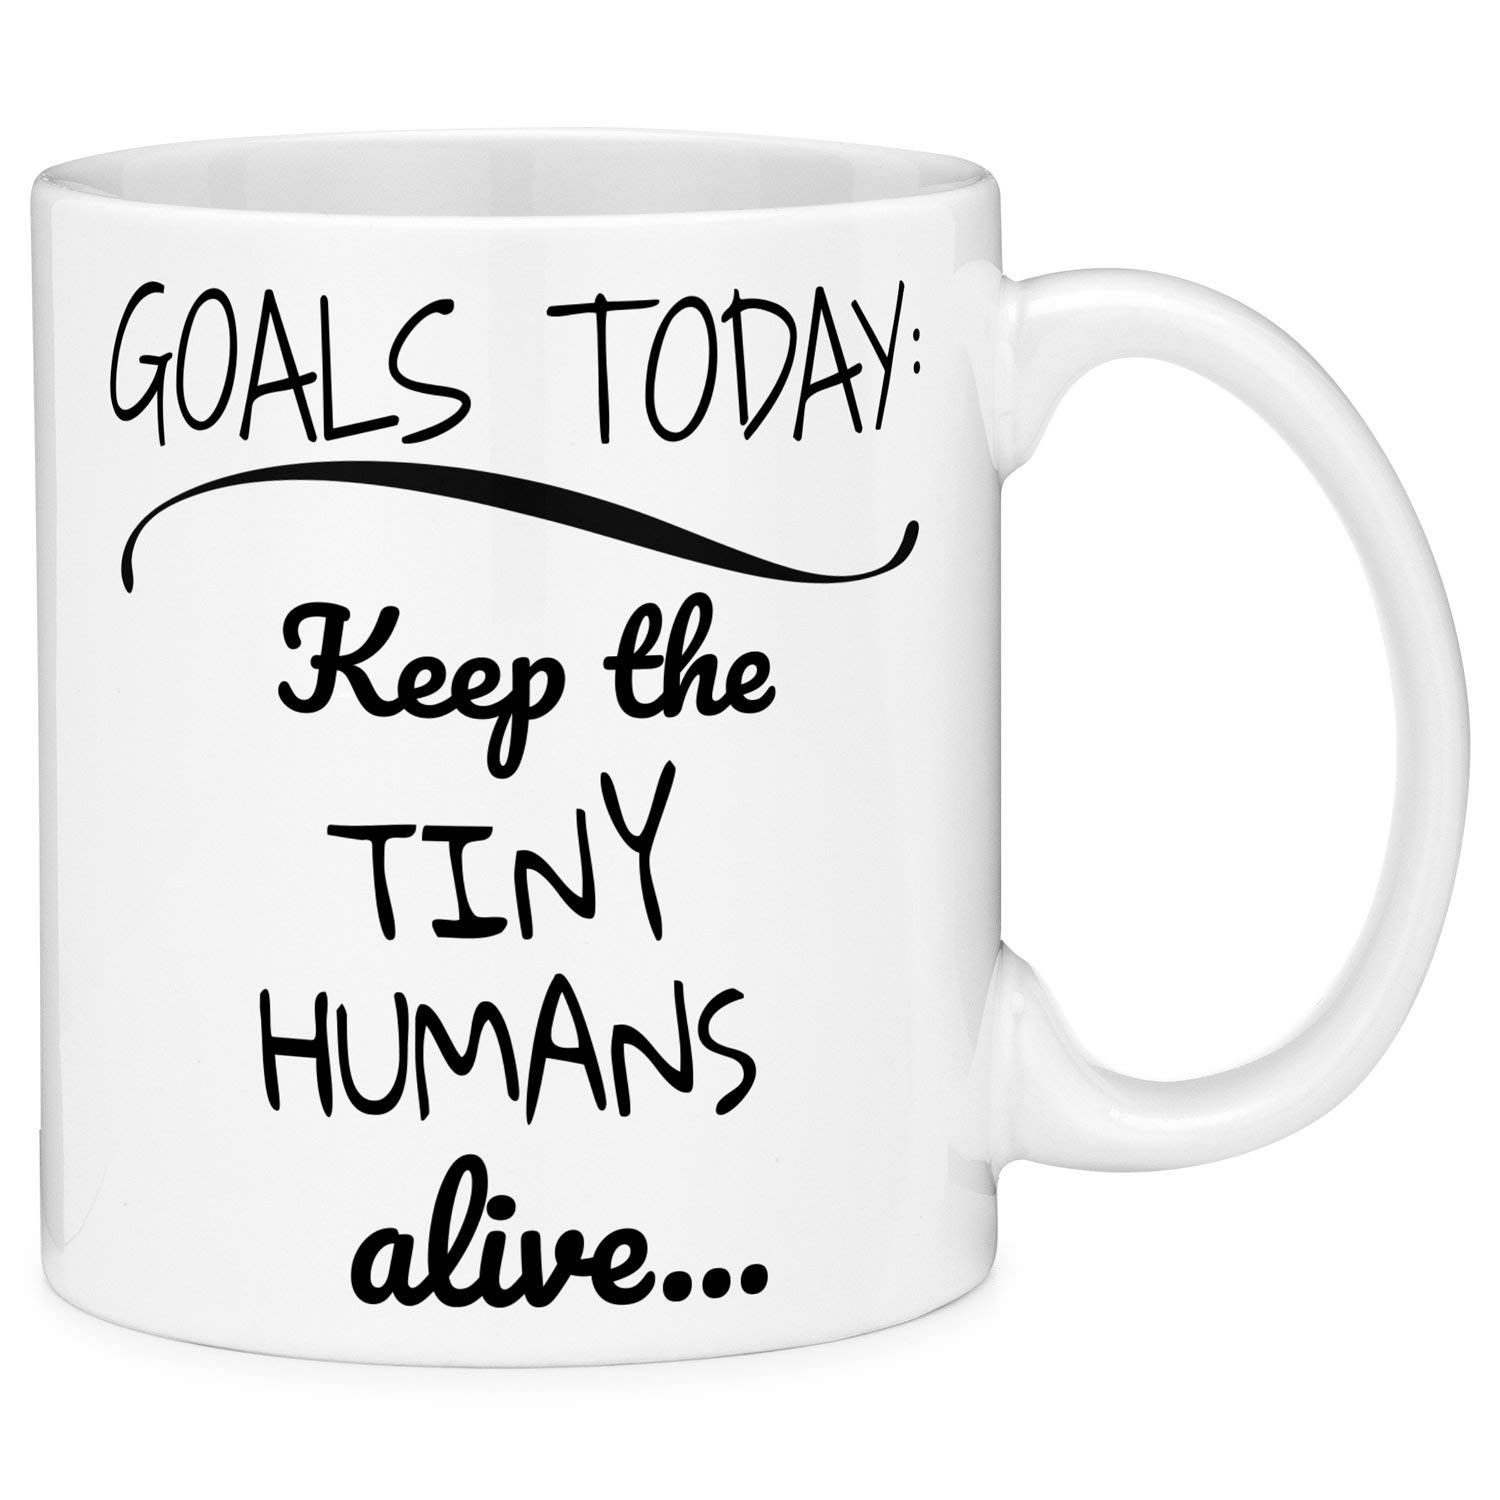 11oz Coffee Mug Goals Today Keep The Tiny Humans Alive Funny Novelty Ceramic Coffee Tea Cup Cool Gift image